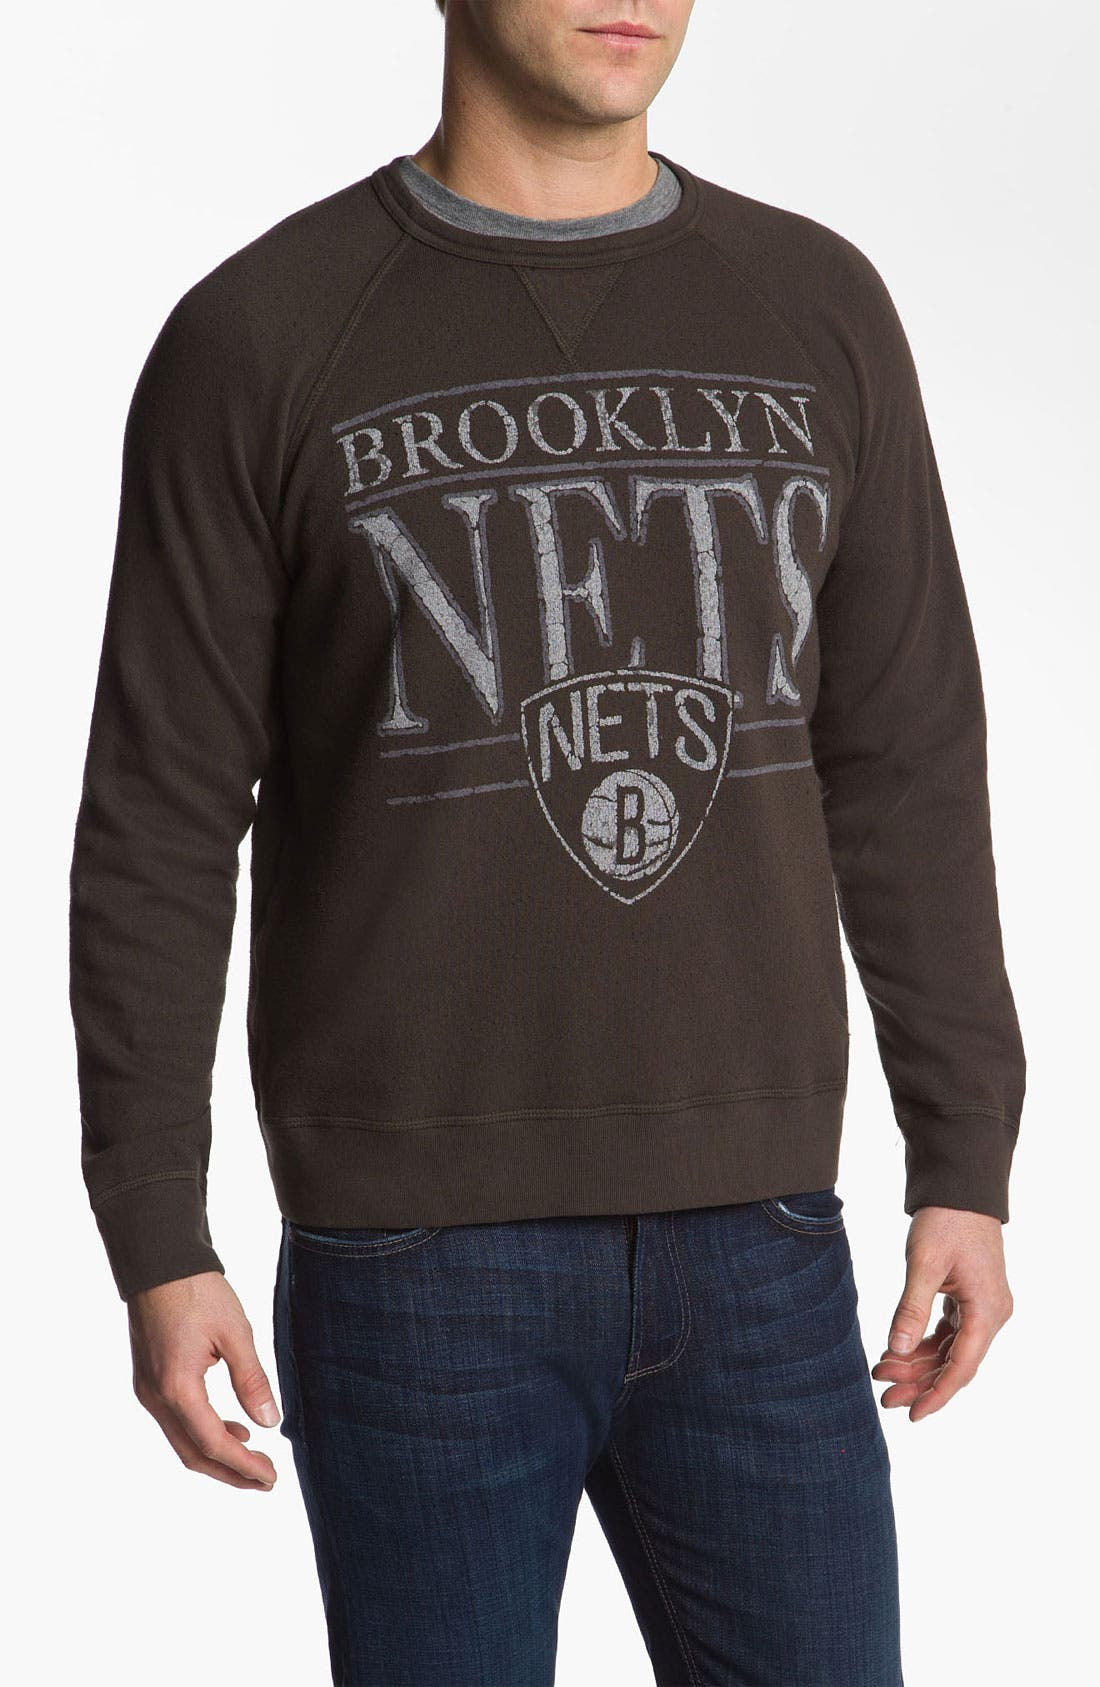 Alternate Image 1 Selected - Junk Food 'Brooklyn Nets' Sweatshirt